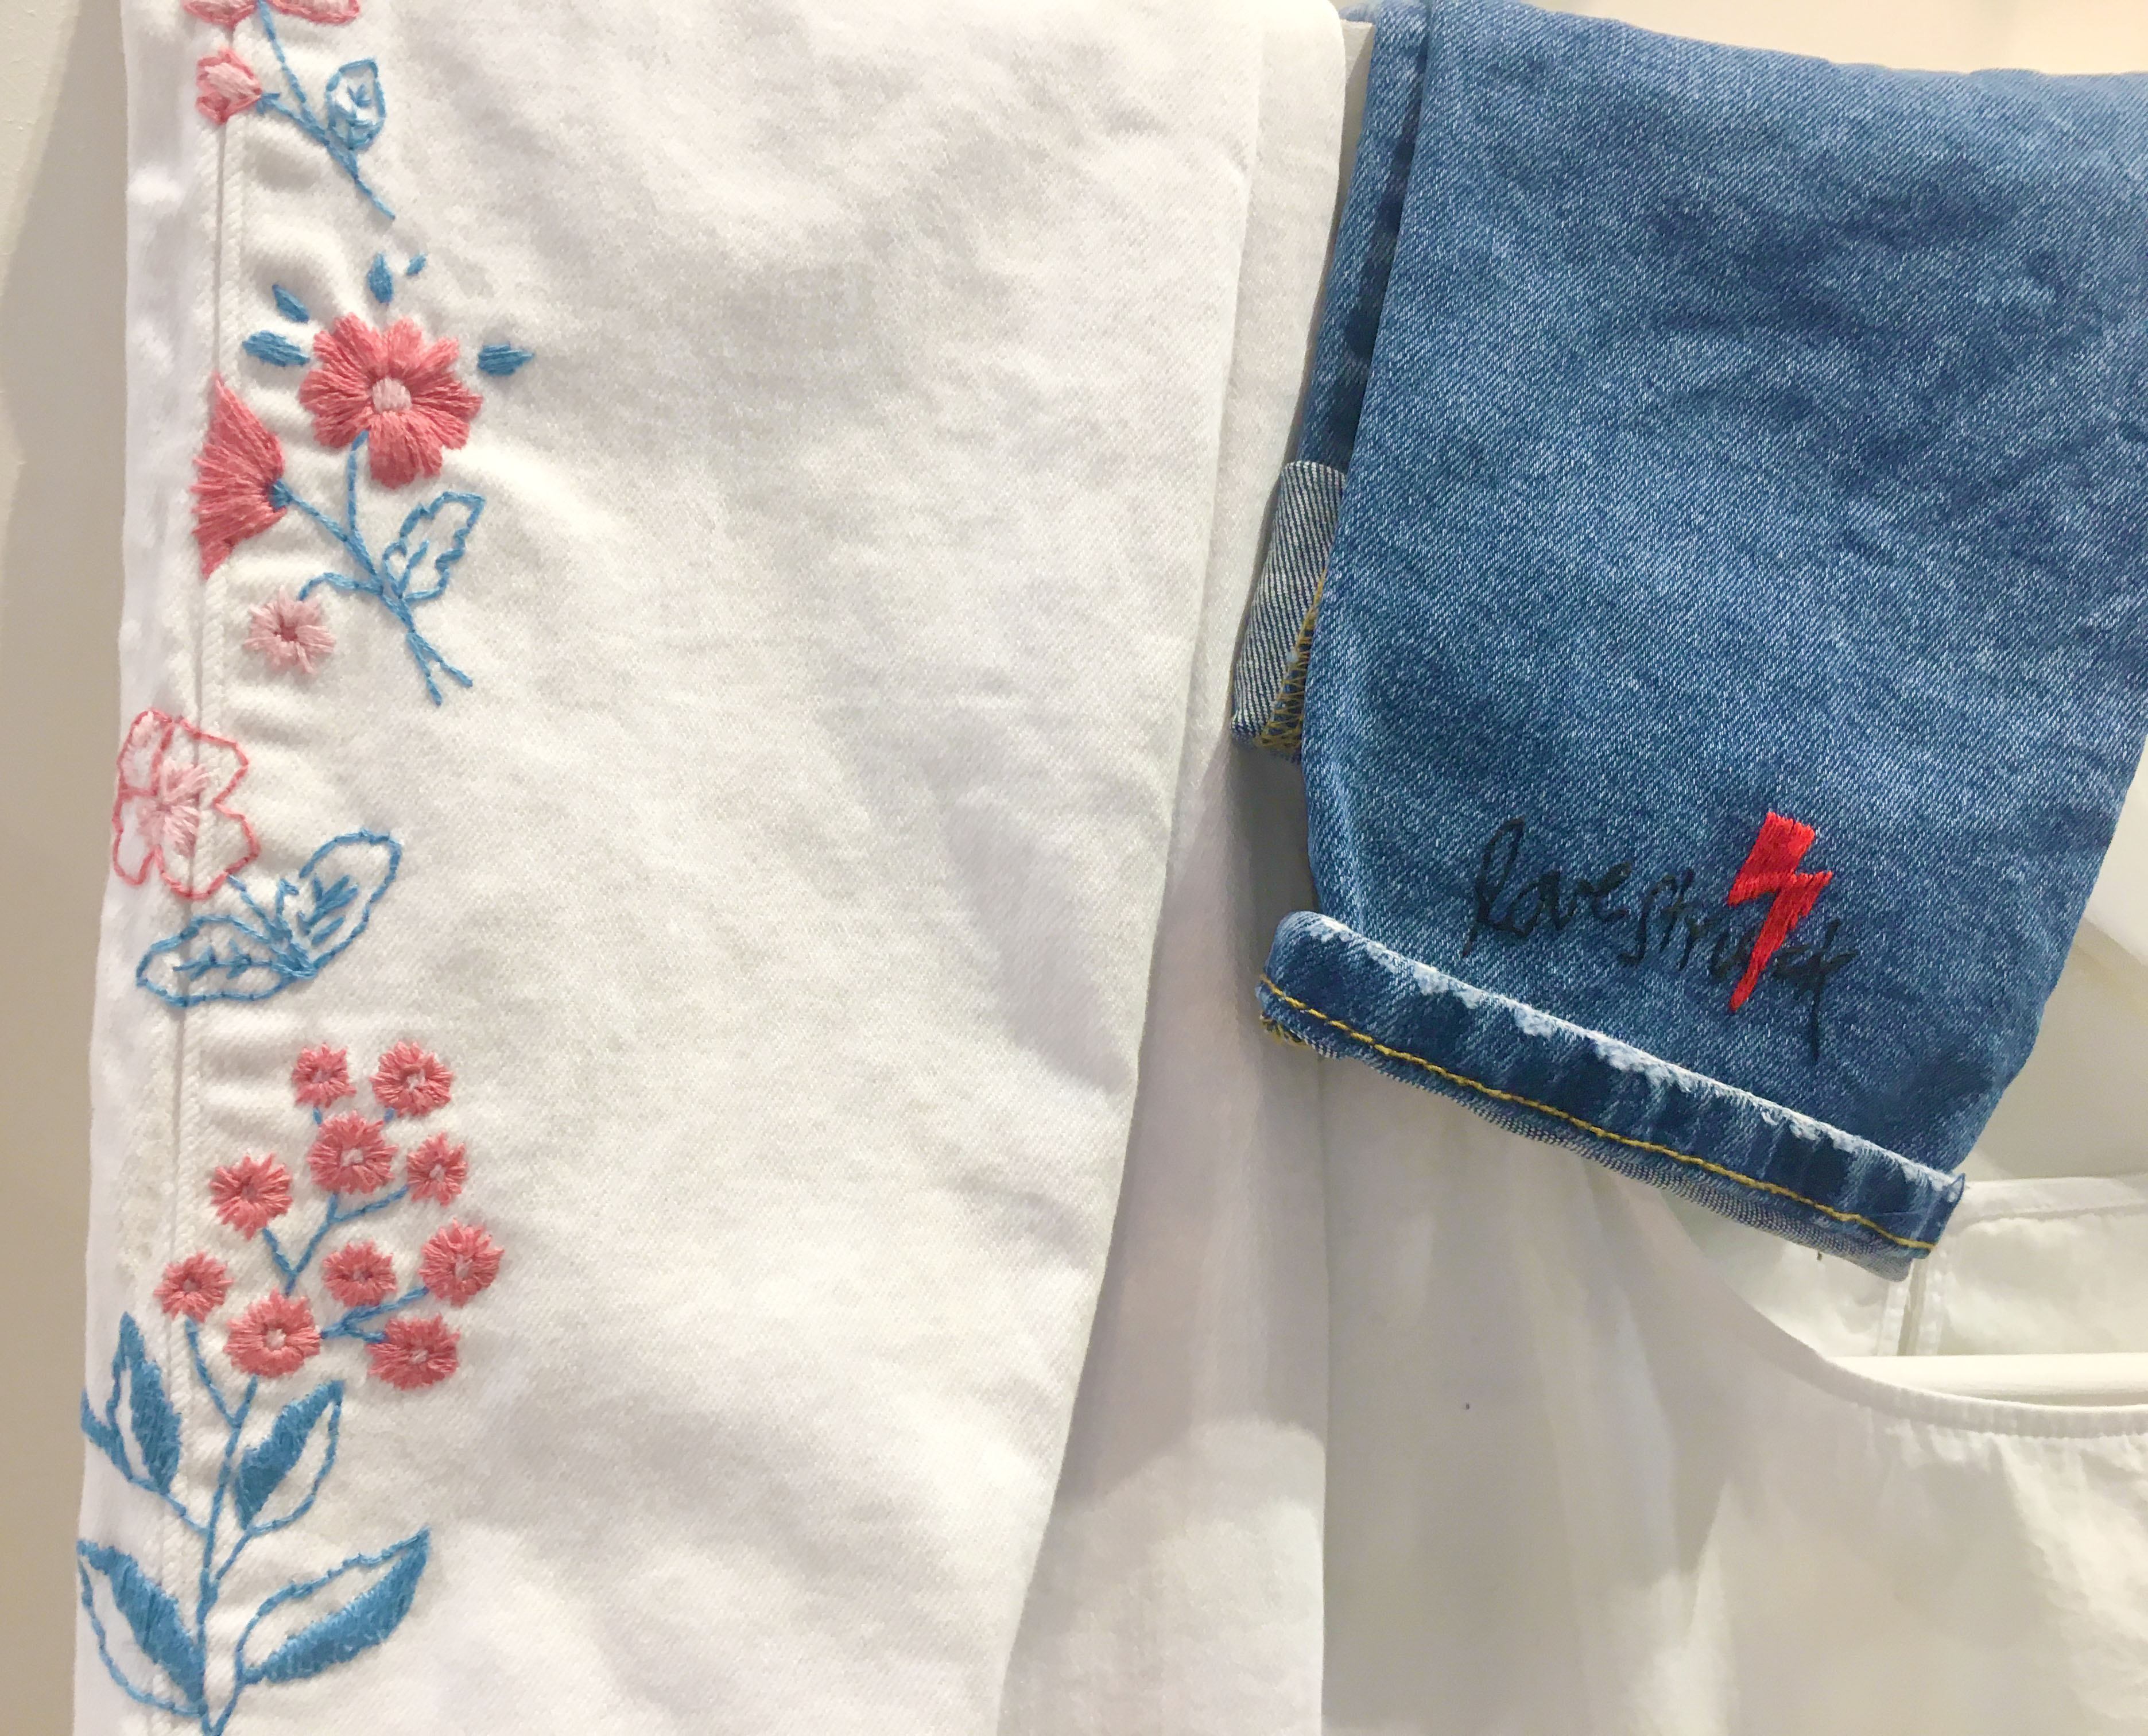 Flower Embroidery on white jeans and Lovestruck embroidery on blue jeans from DMC